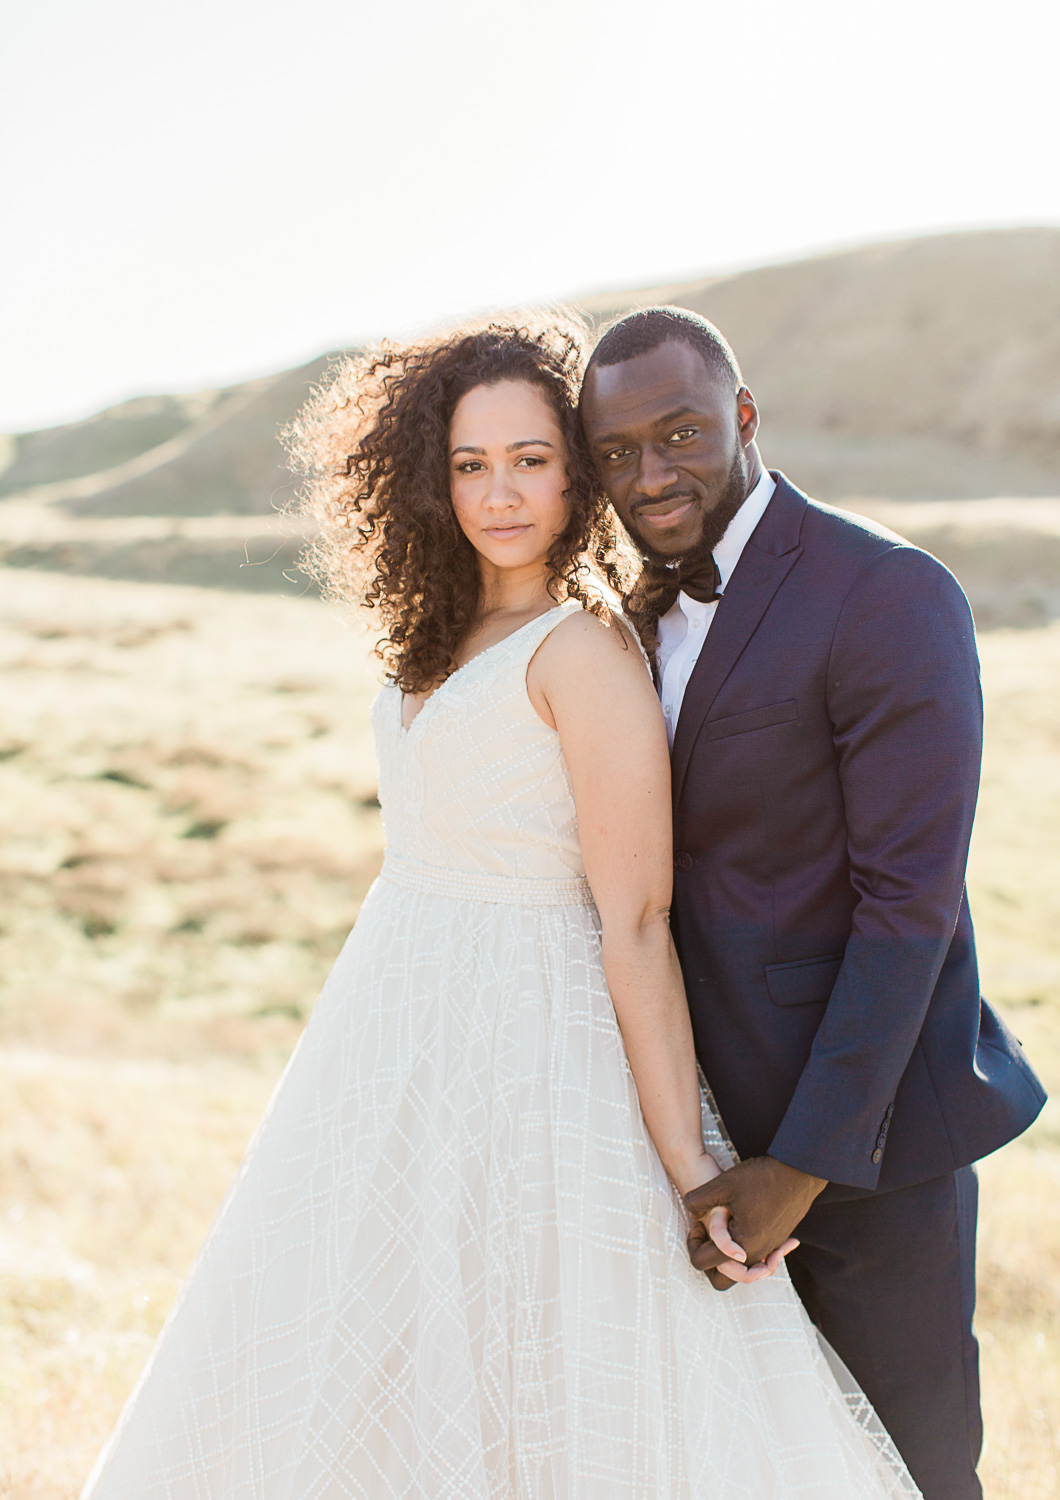 Spring wedding styled shoot: Golden hour in Beaumont, CA.jpg